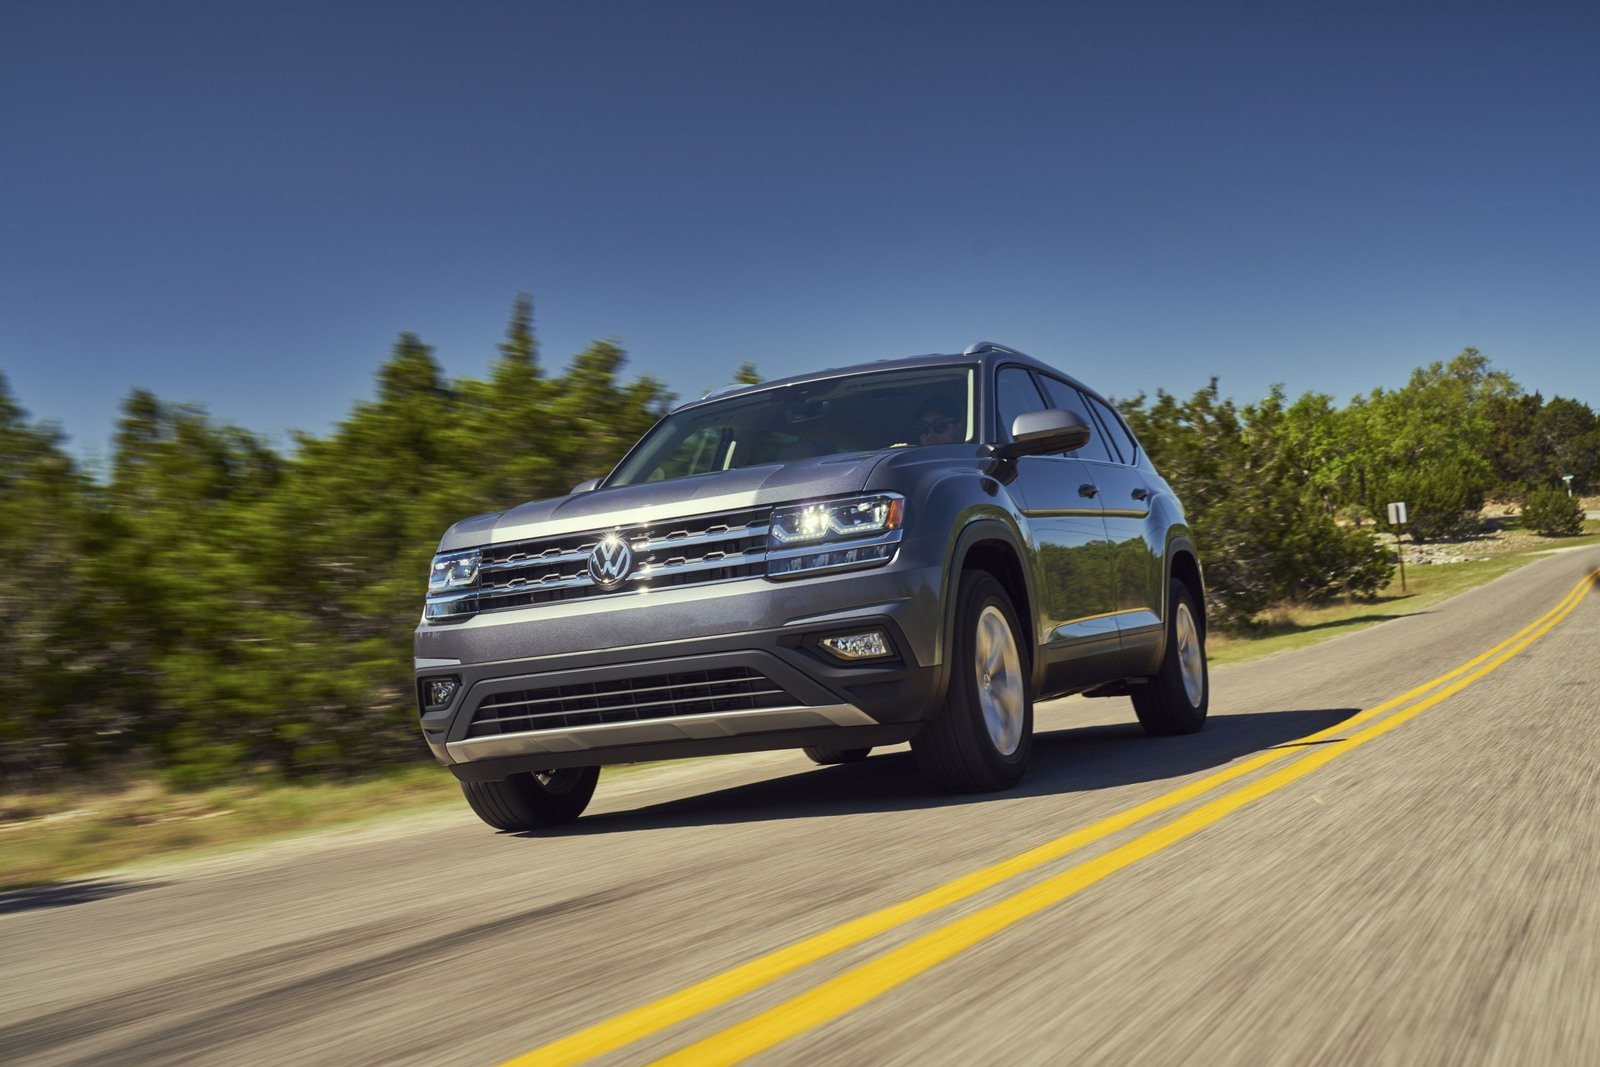 2018 volkswagen atlas picture 711920 car review top speed. Black Bedroom Furniture Sets. Home Design Ideas